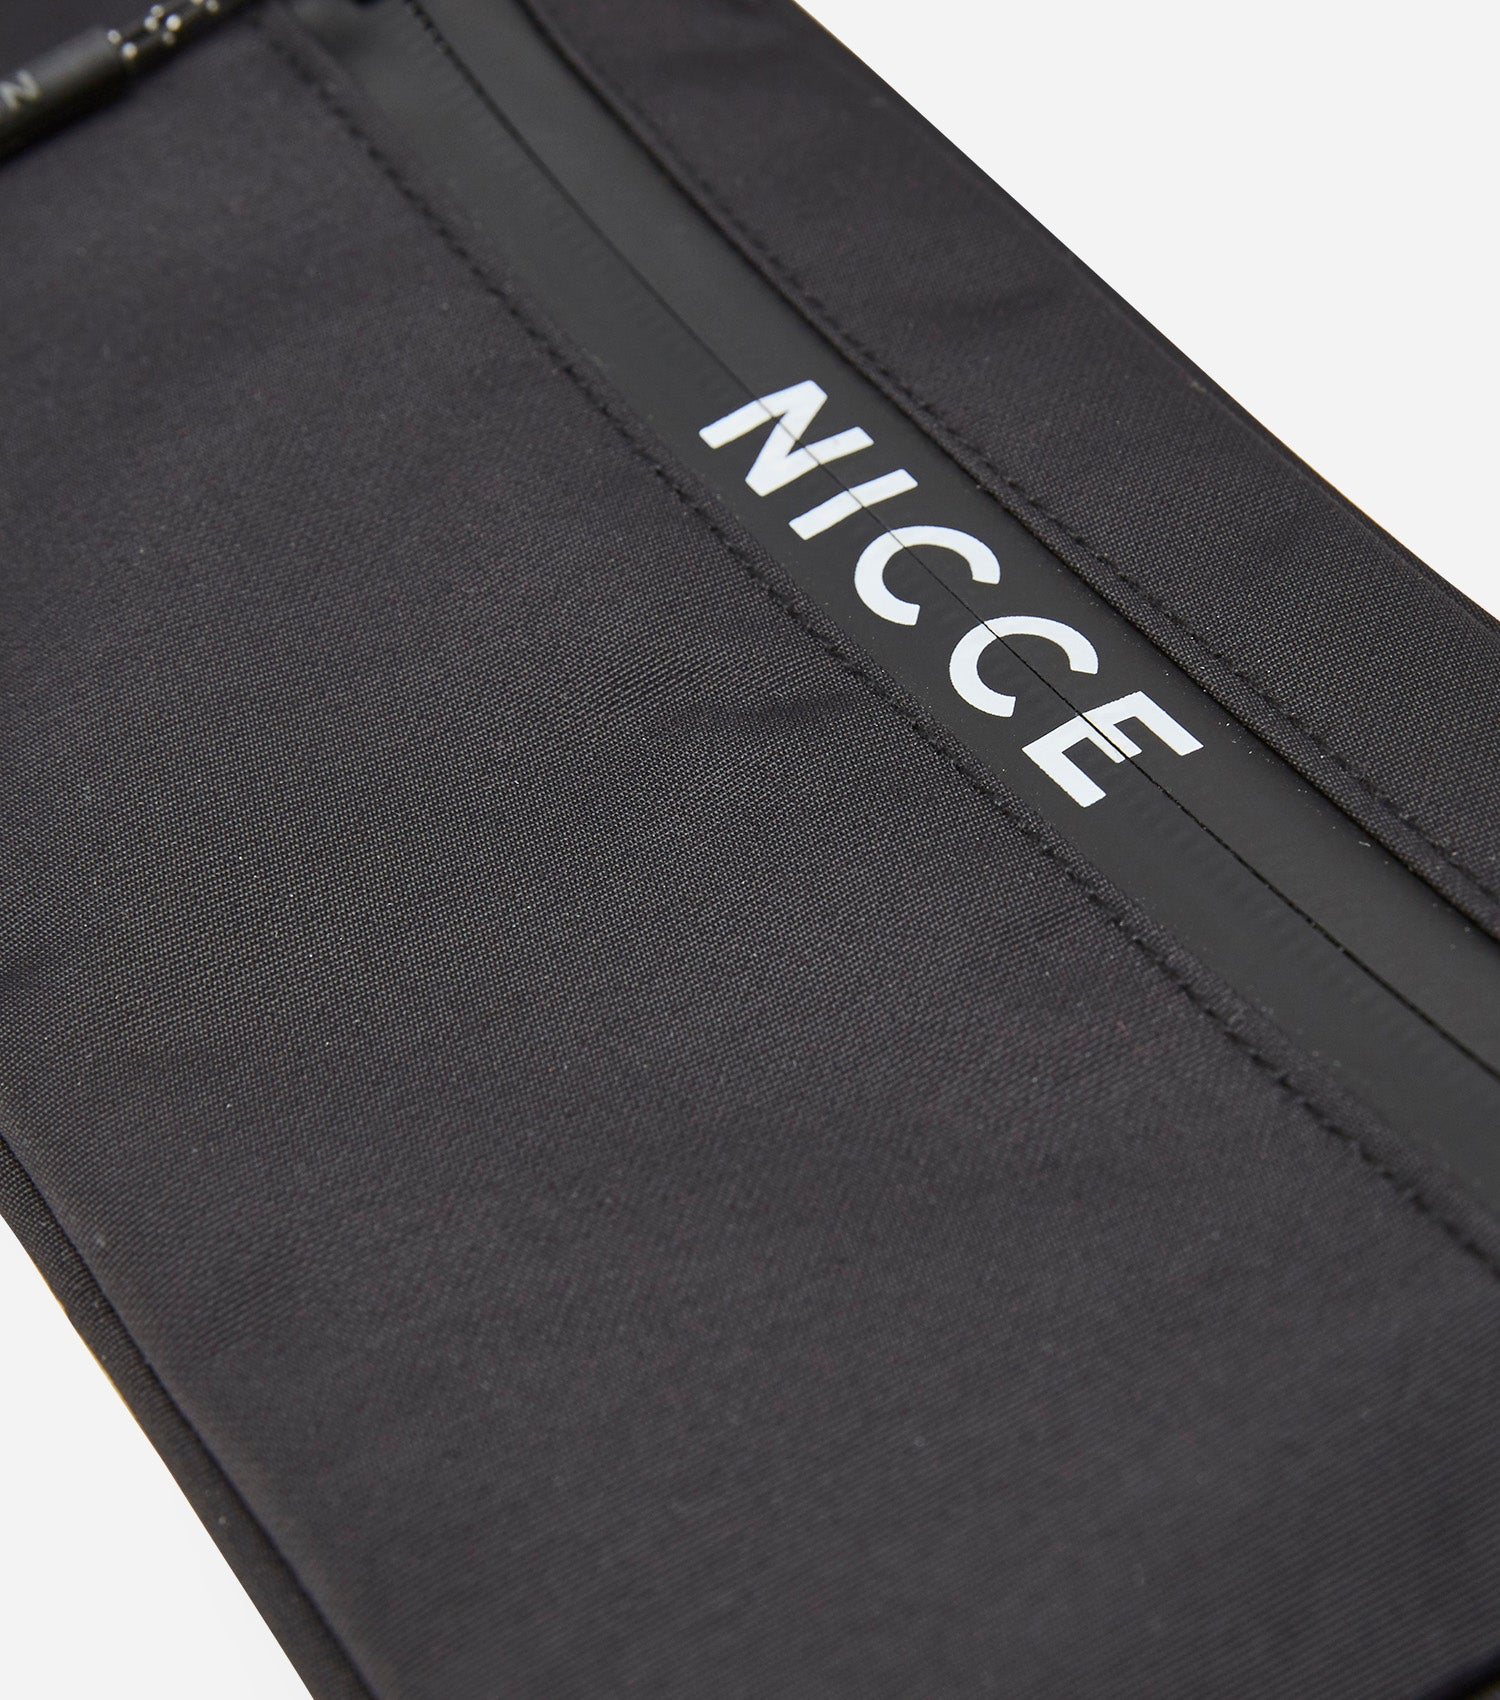 NICCE Lazia Bag | Black, Bags